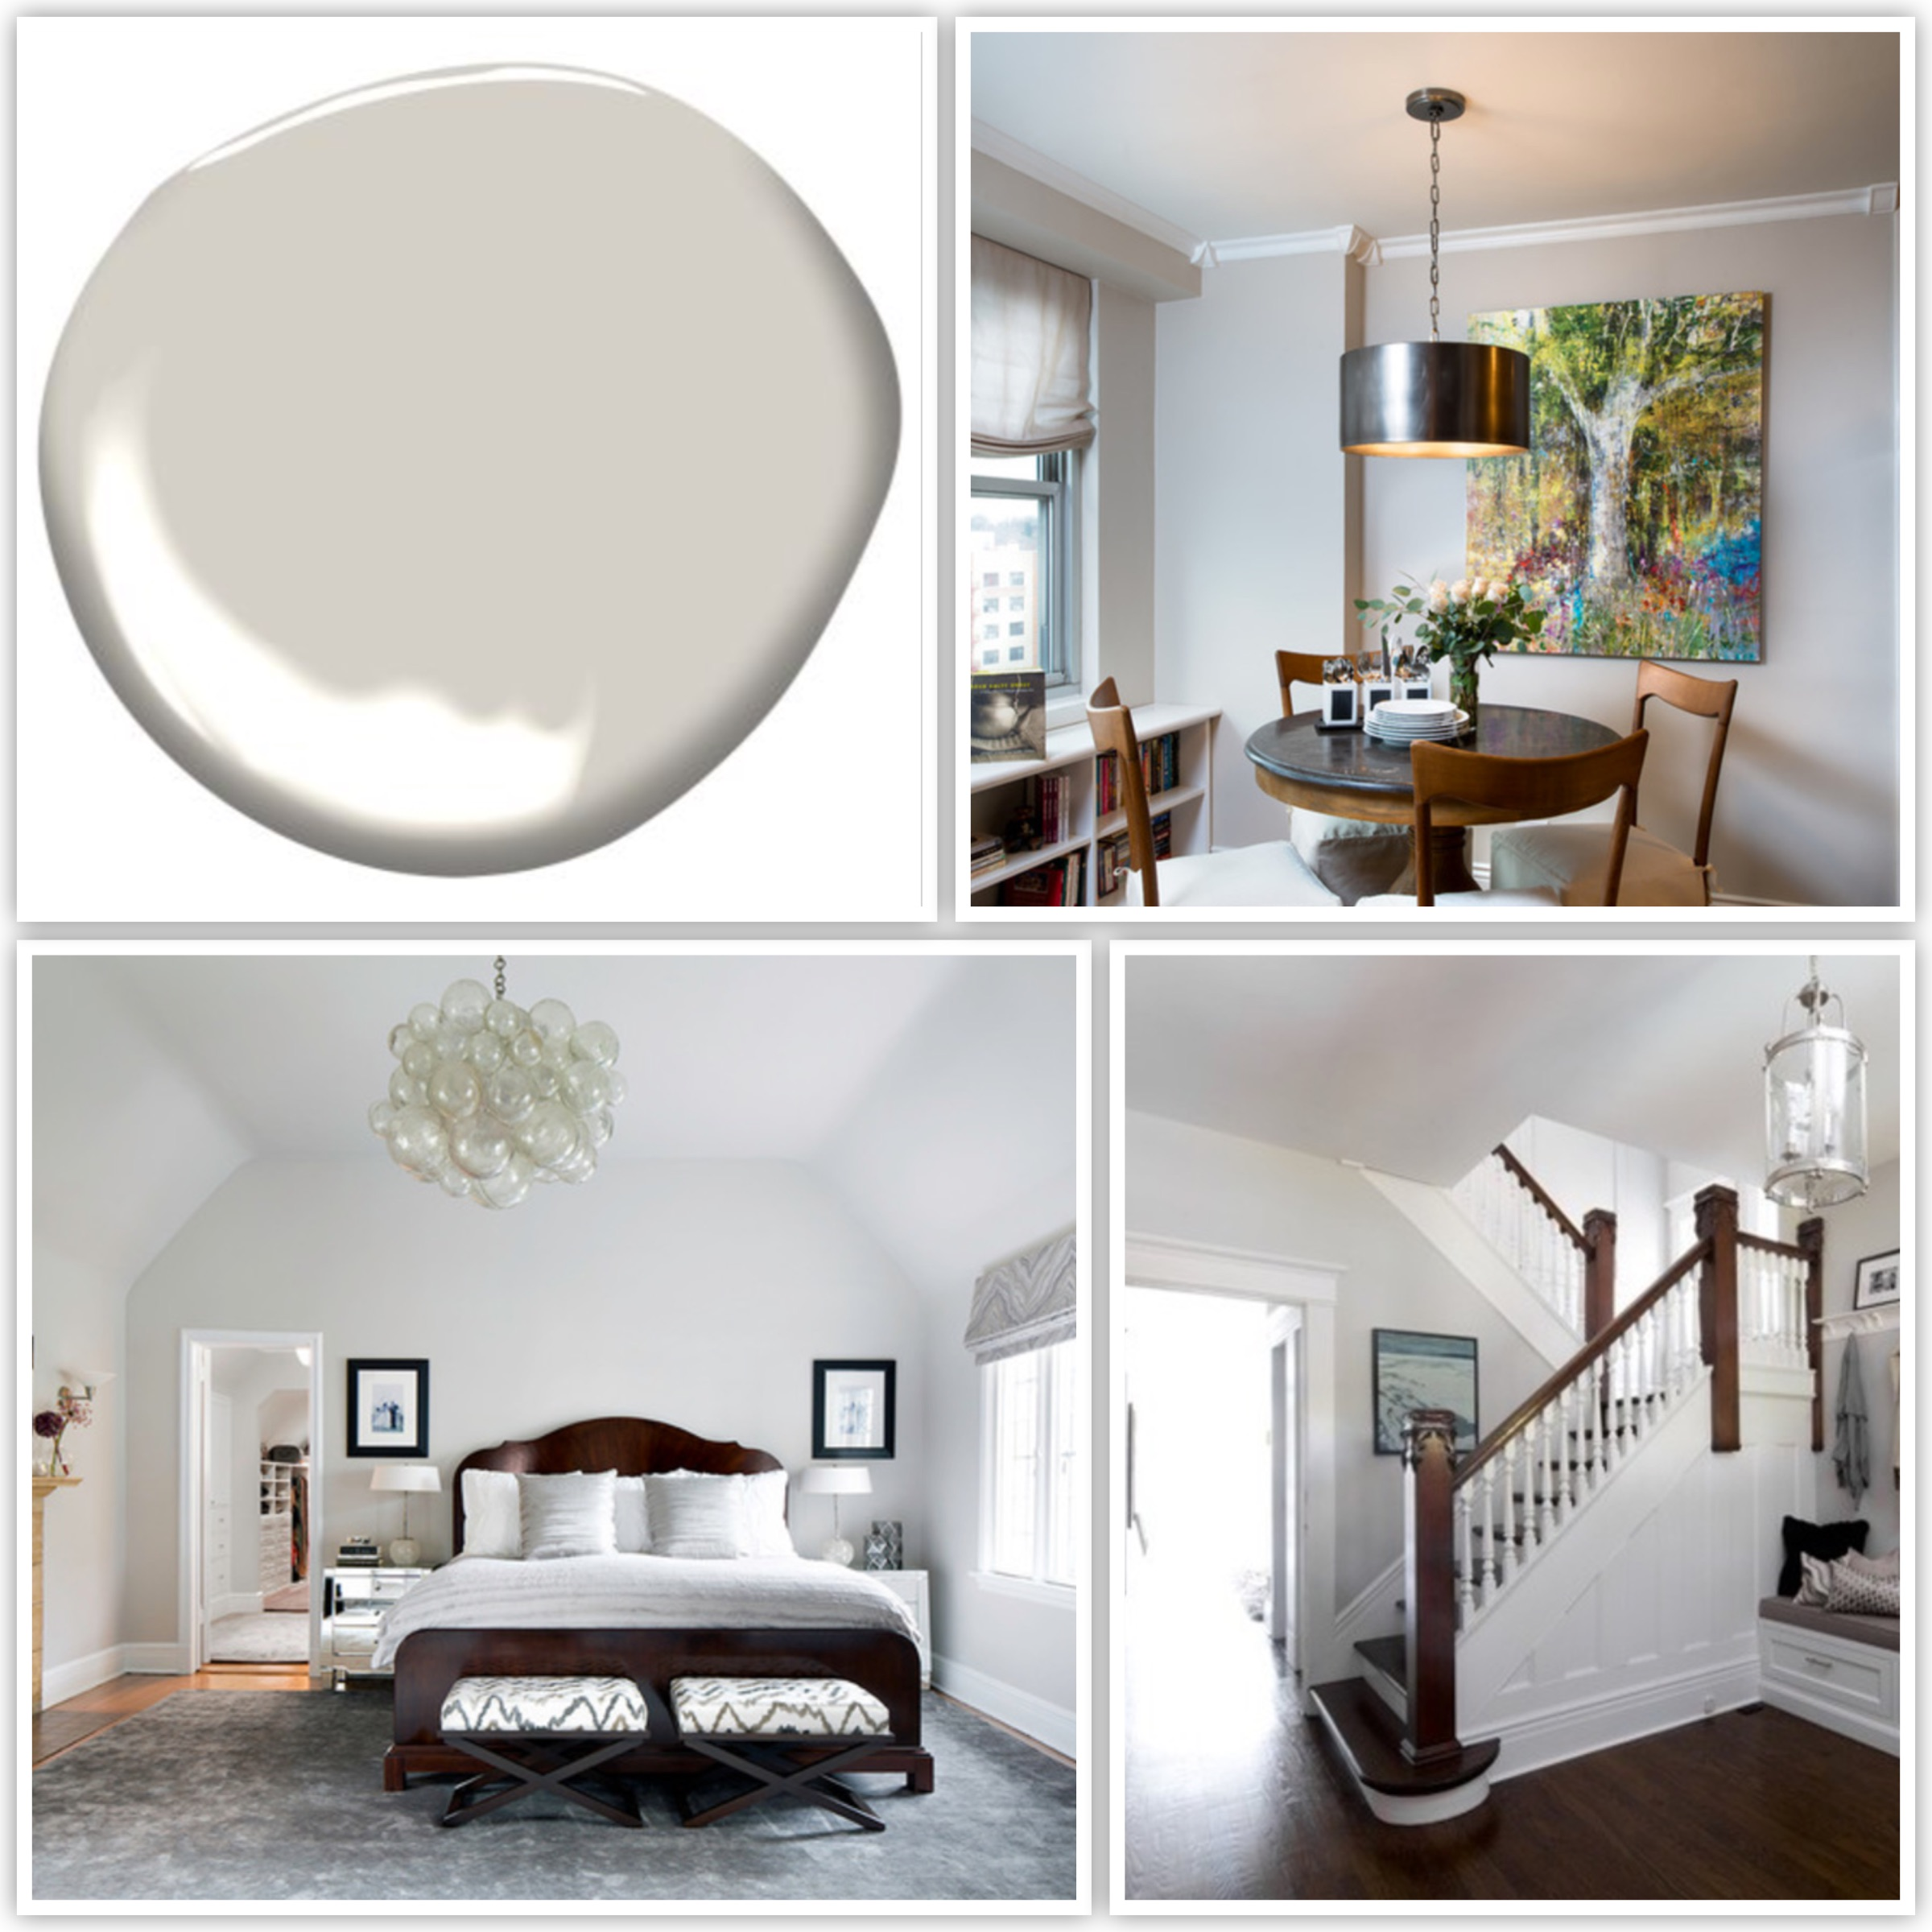 Hilarious Benjamin Moore Paint Colour Abalone Choosing Right Paint Colour Selling Your Home Village Guru Benjamin Moore Abalone Sherwin Williams Benjamin Moore Abalone Grey houzz-03 Benjamin Moore Abalone